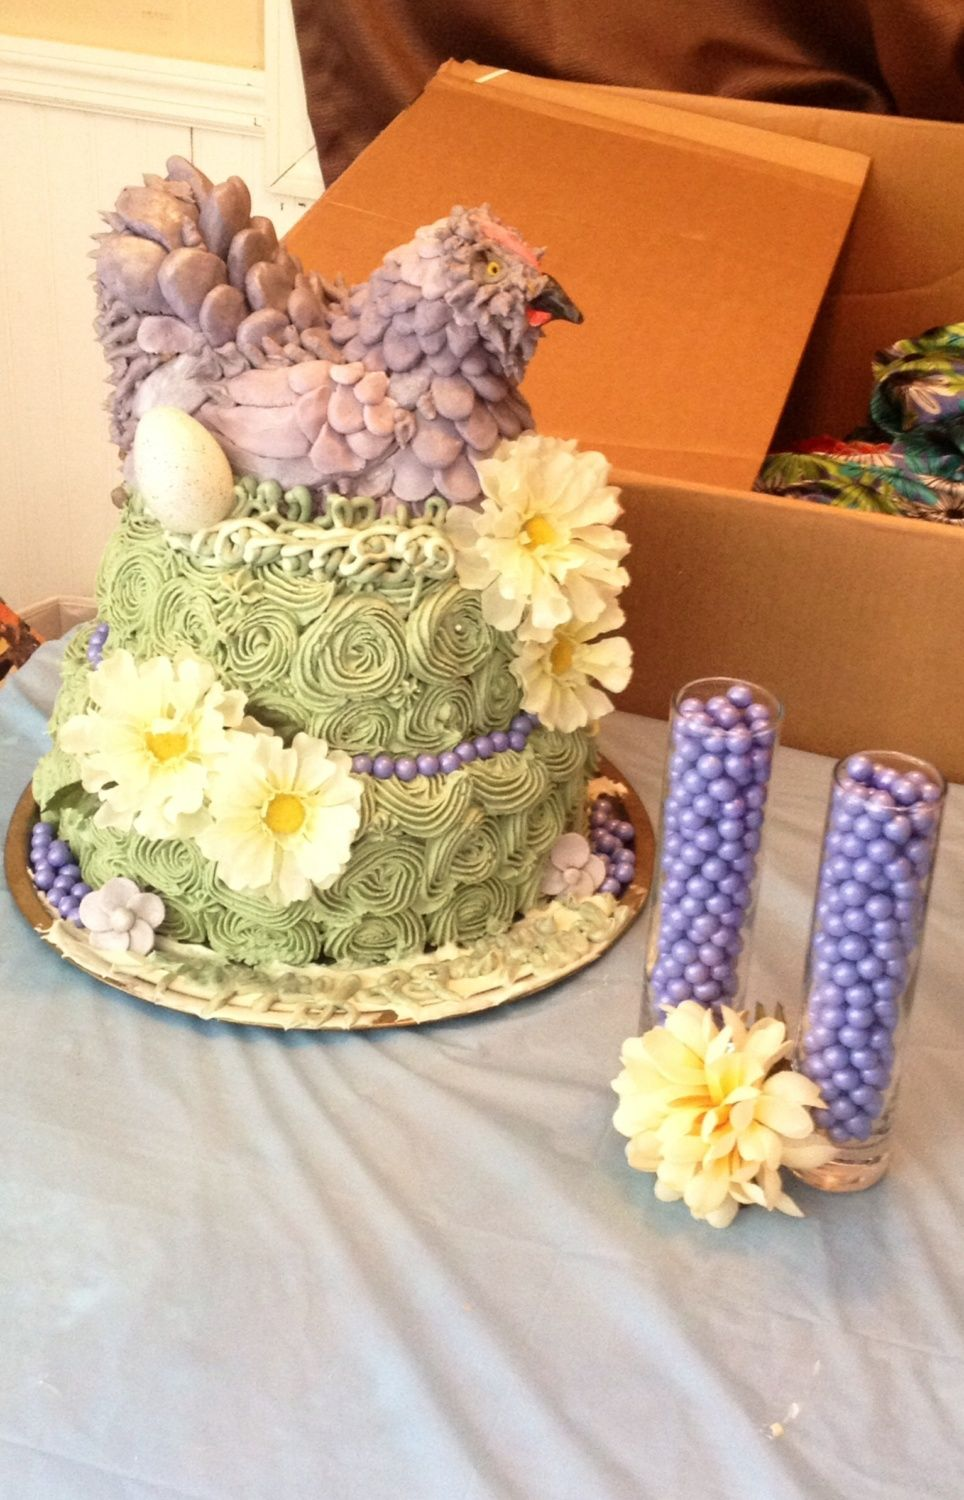 Lavender Chicken birthday cake I made. Kinda rushed the face. Wish I would have spent more time on it. Homemade fondant and gumpaste and a homemade buttercream. Was a six layer cake alternating chocolate and white layers.